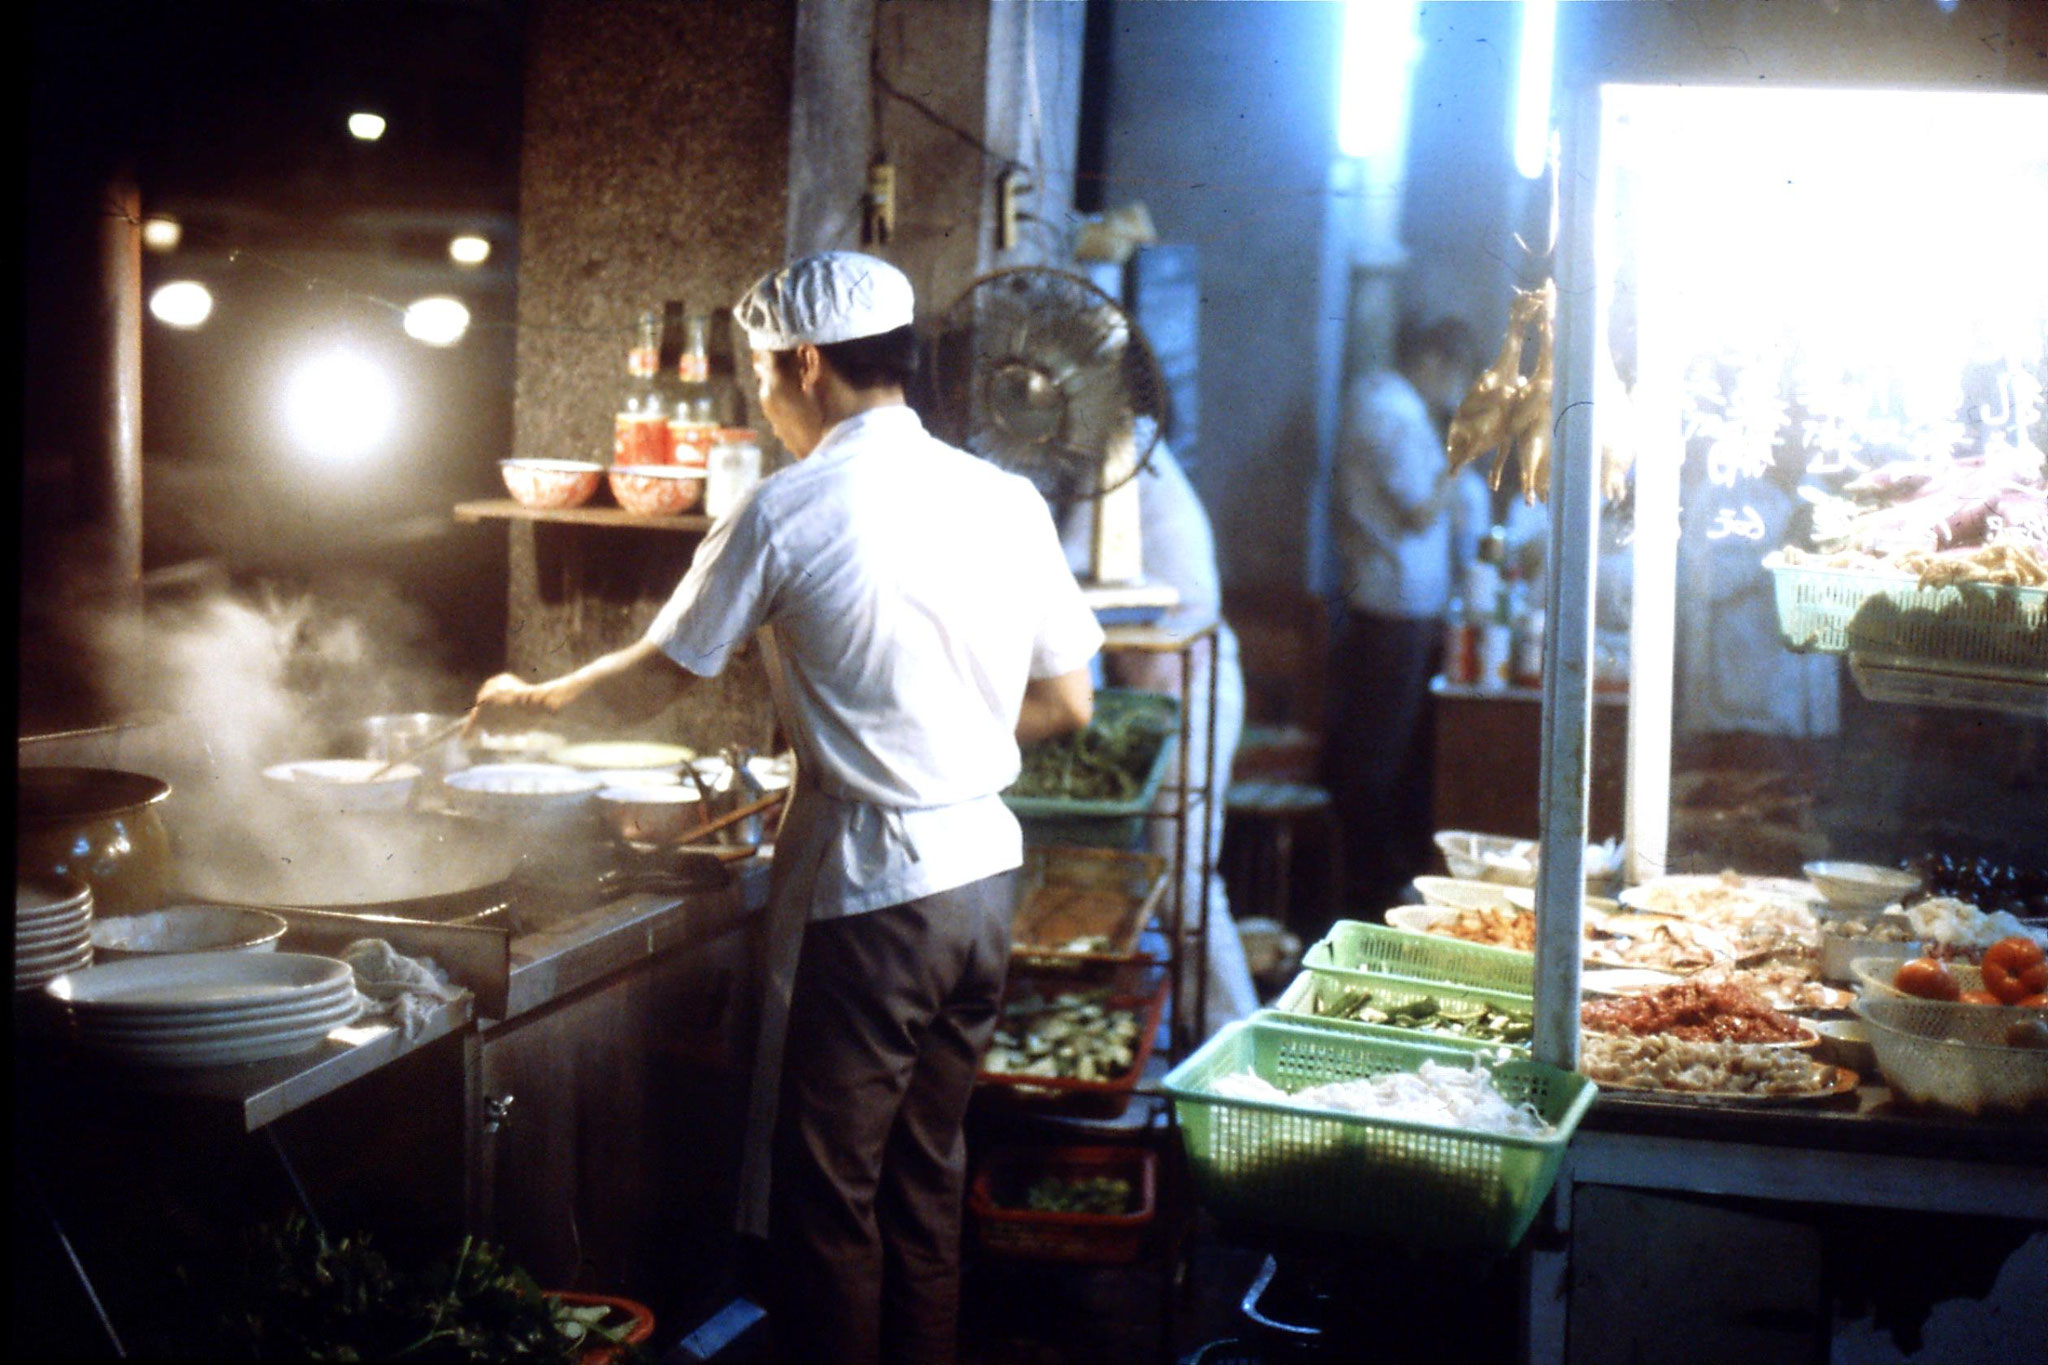 18/5/1989: 8: Guangzhou evening food stall